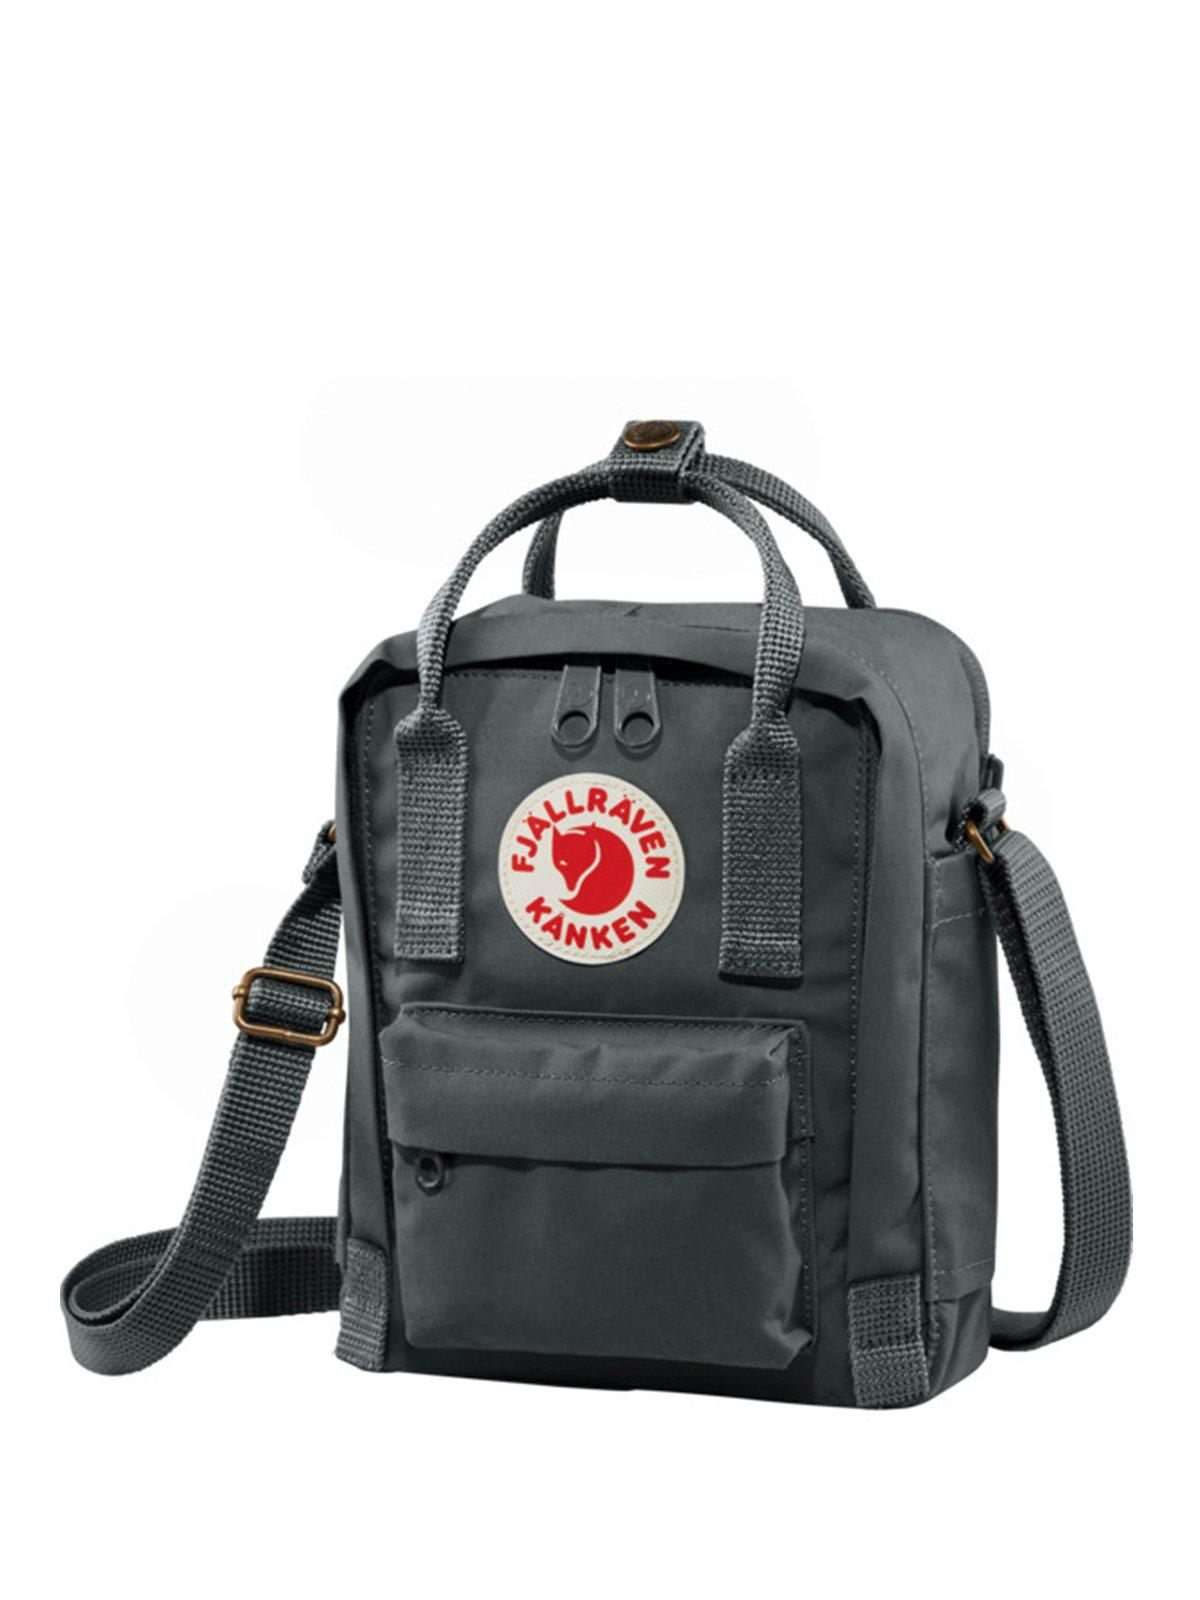 Fjallraven Kanken Sling Bag Graphite - MORE by Morello Indonesia